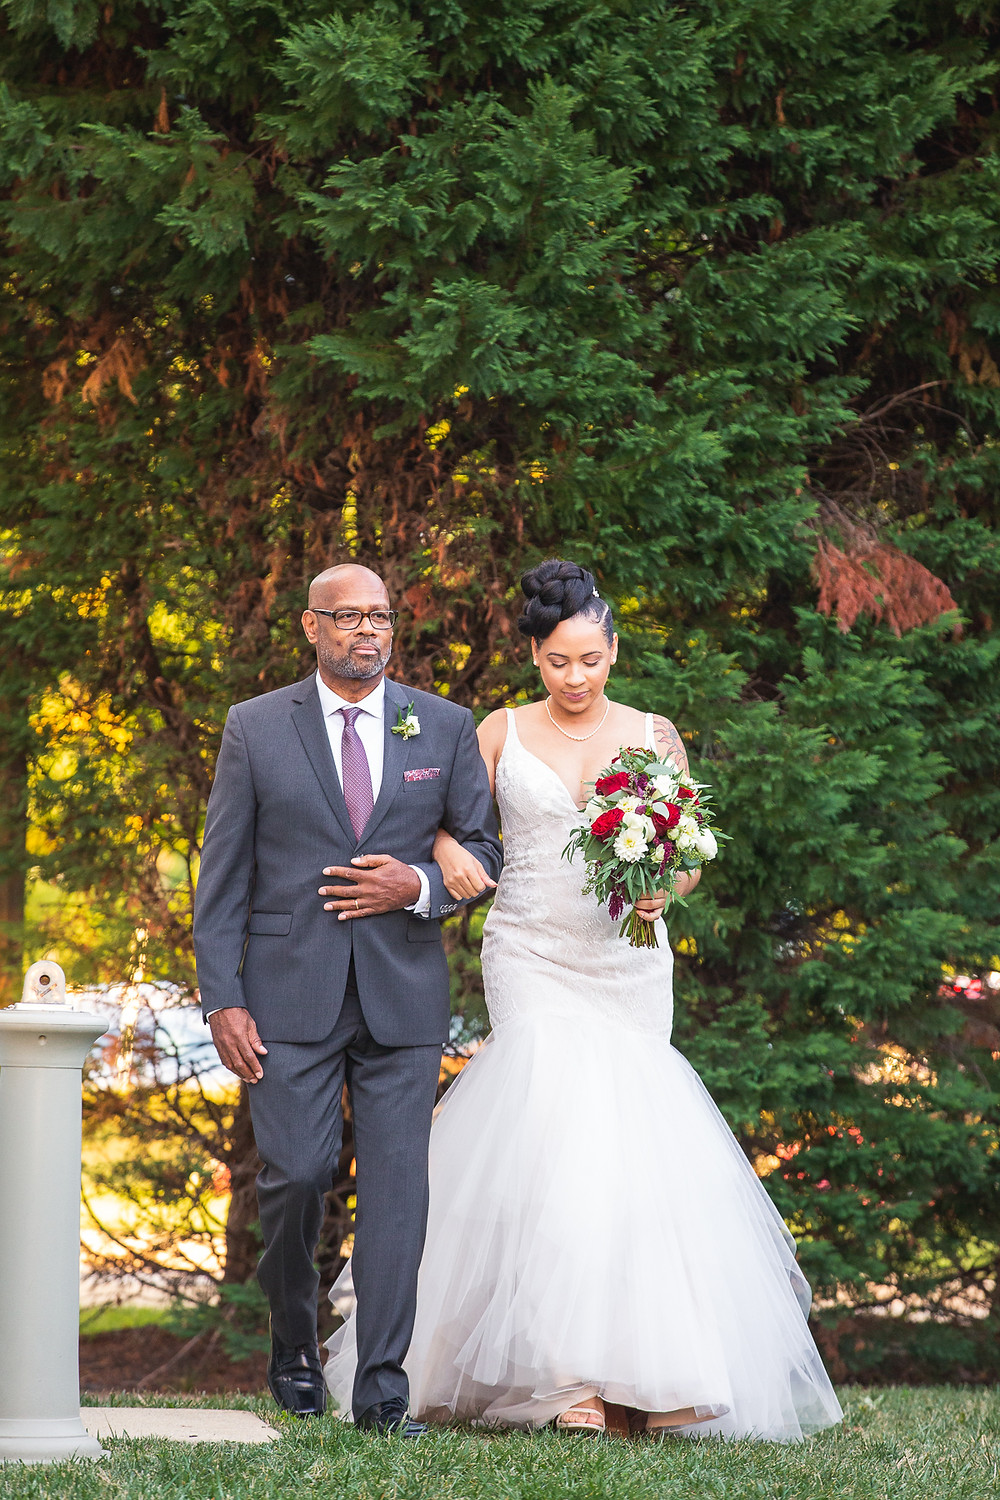 Bride and her father walking into the wedding ceremony area at Martin's Crosswinds in Greenbelt, Maryland.